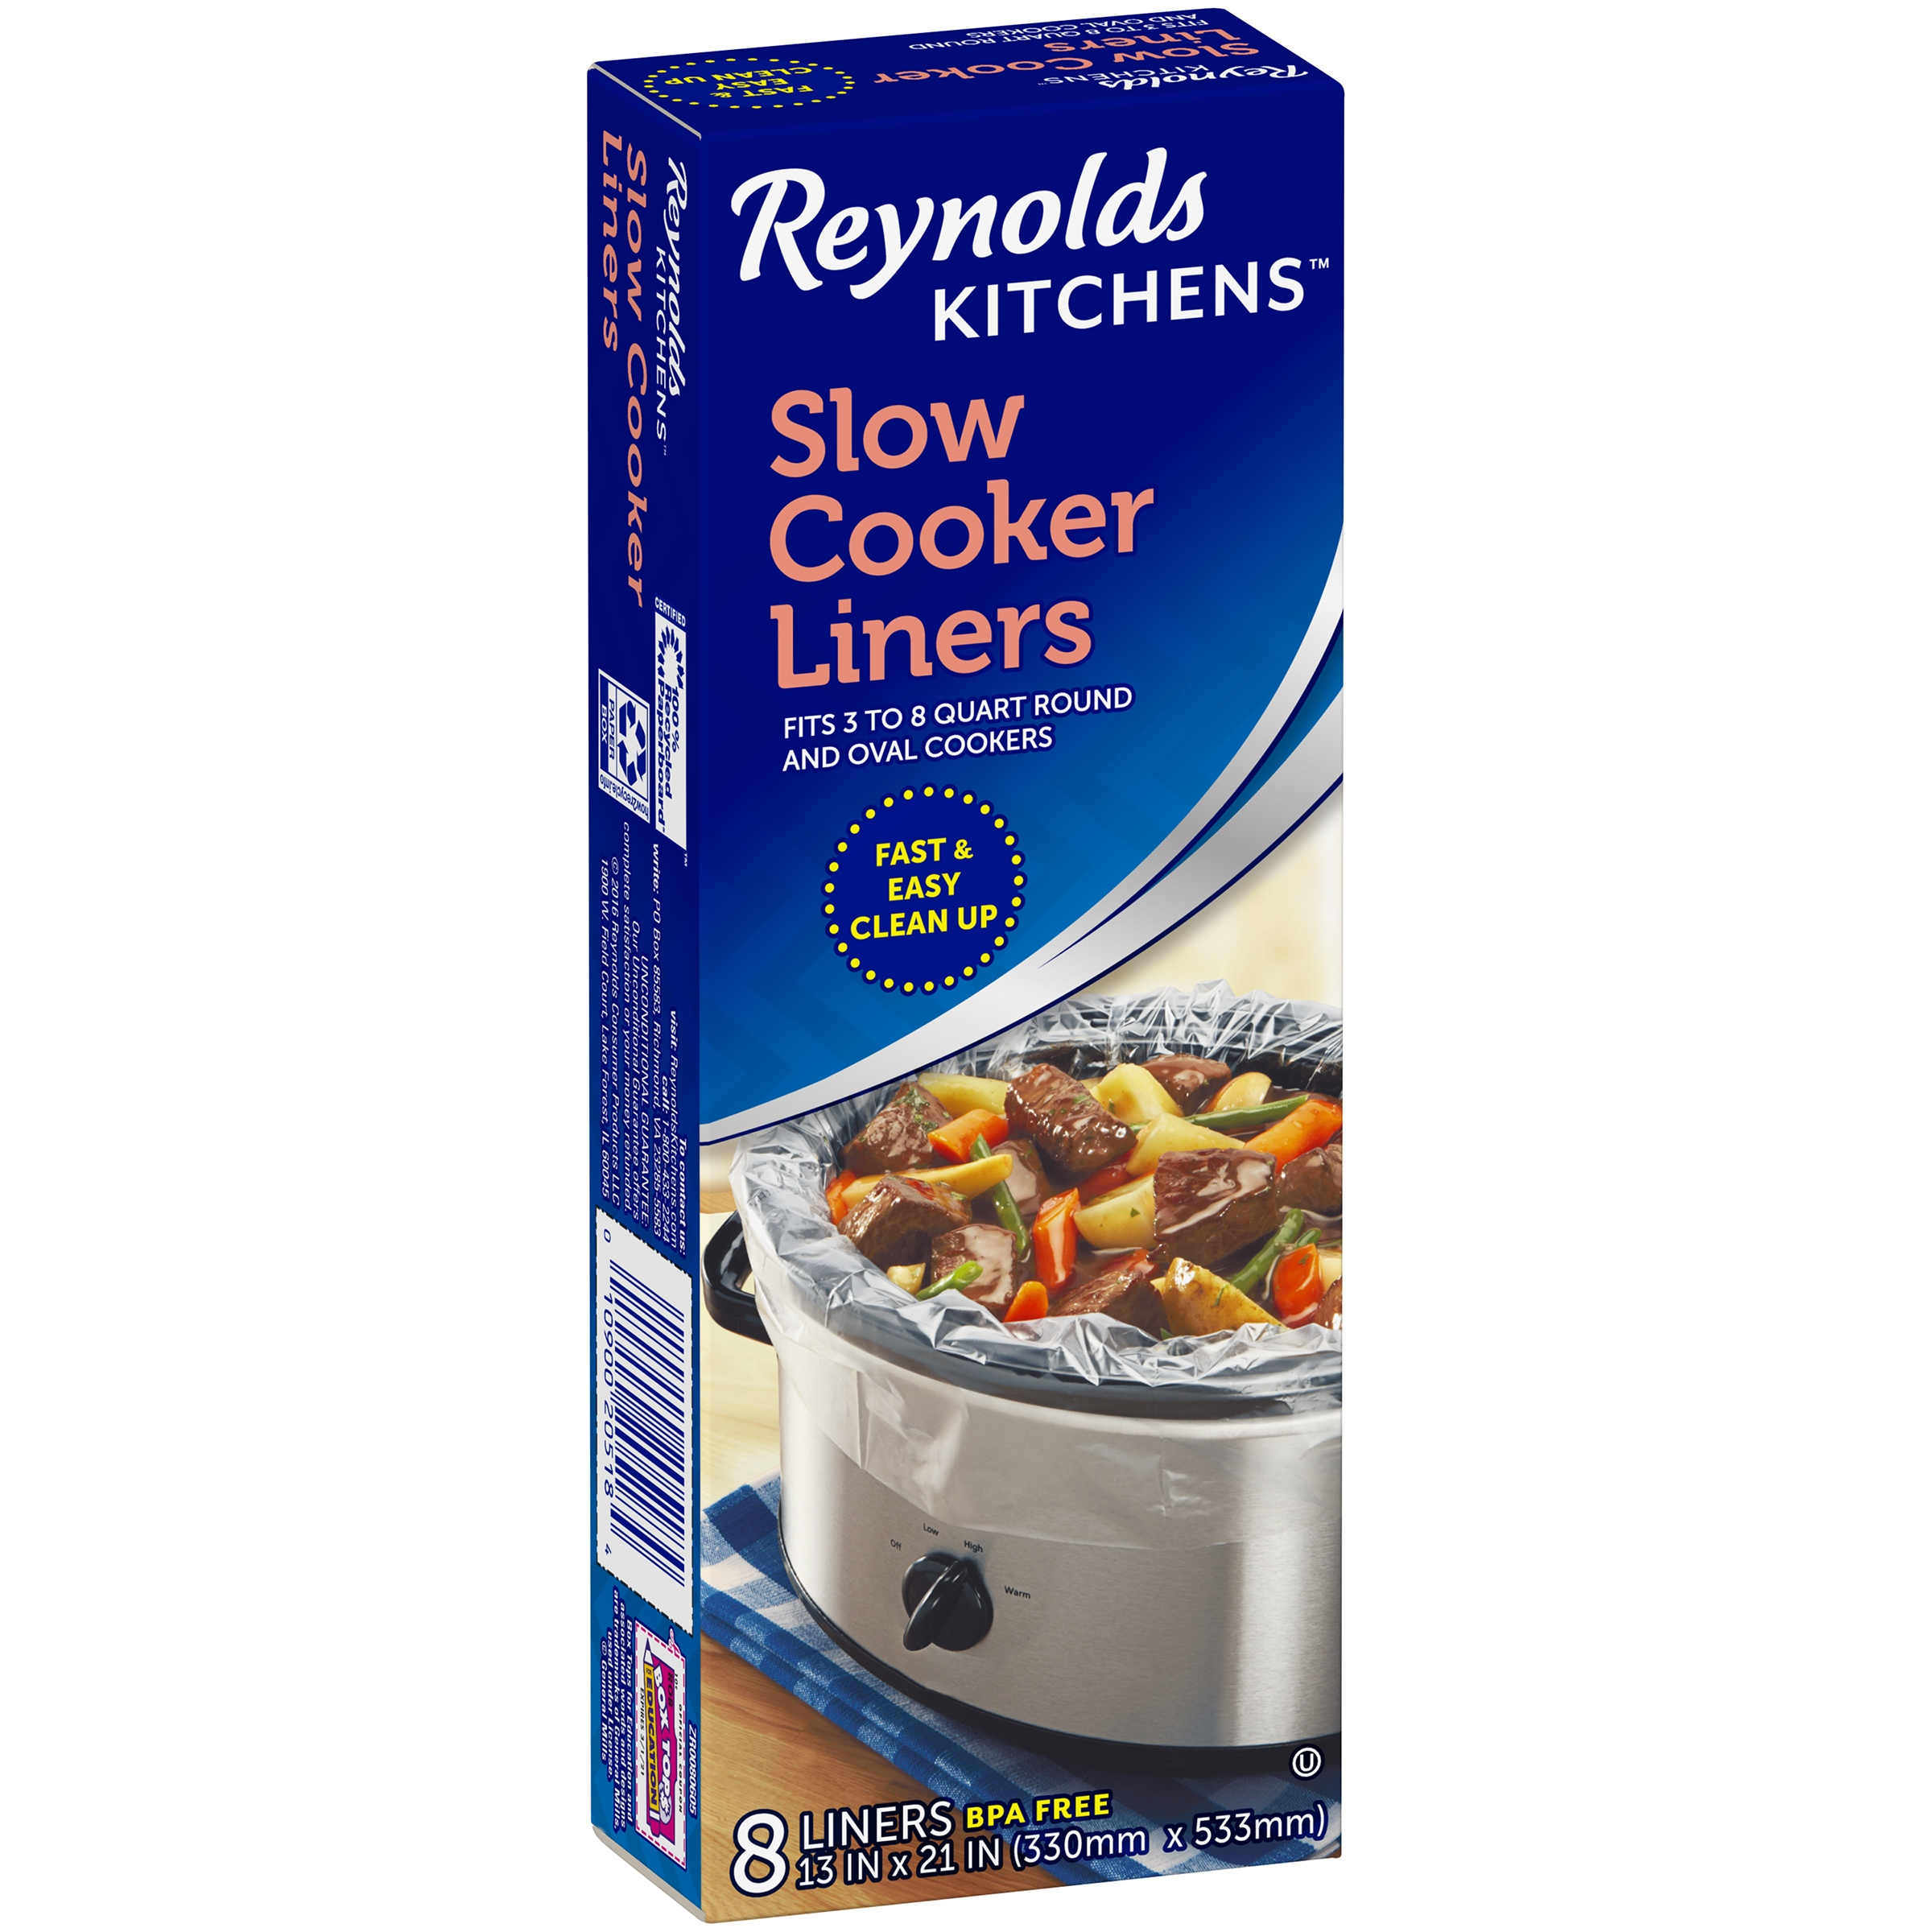 Reynolds Kitchens™ Slow Cooker Liners 8 ct Box